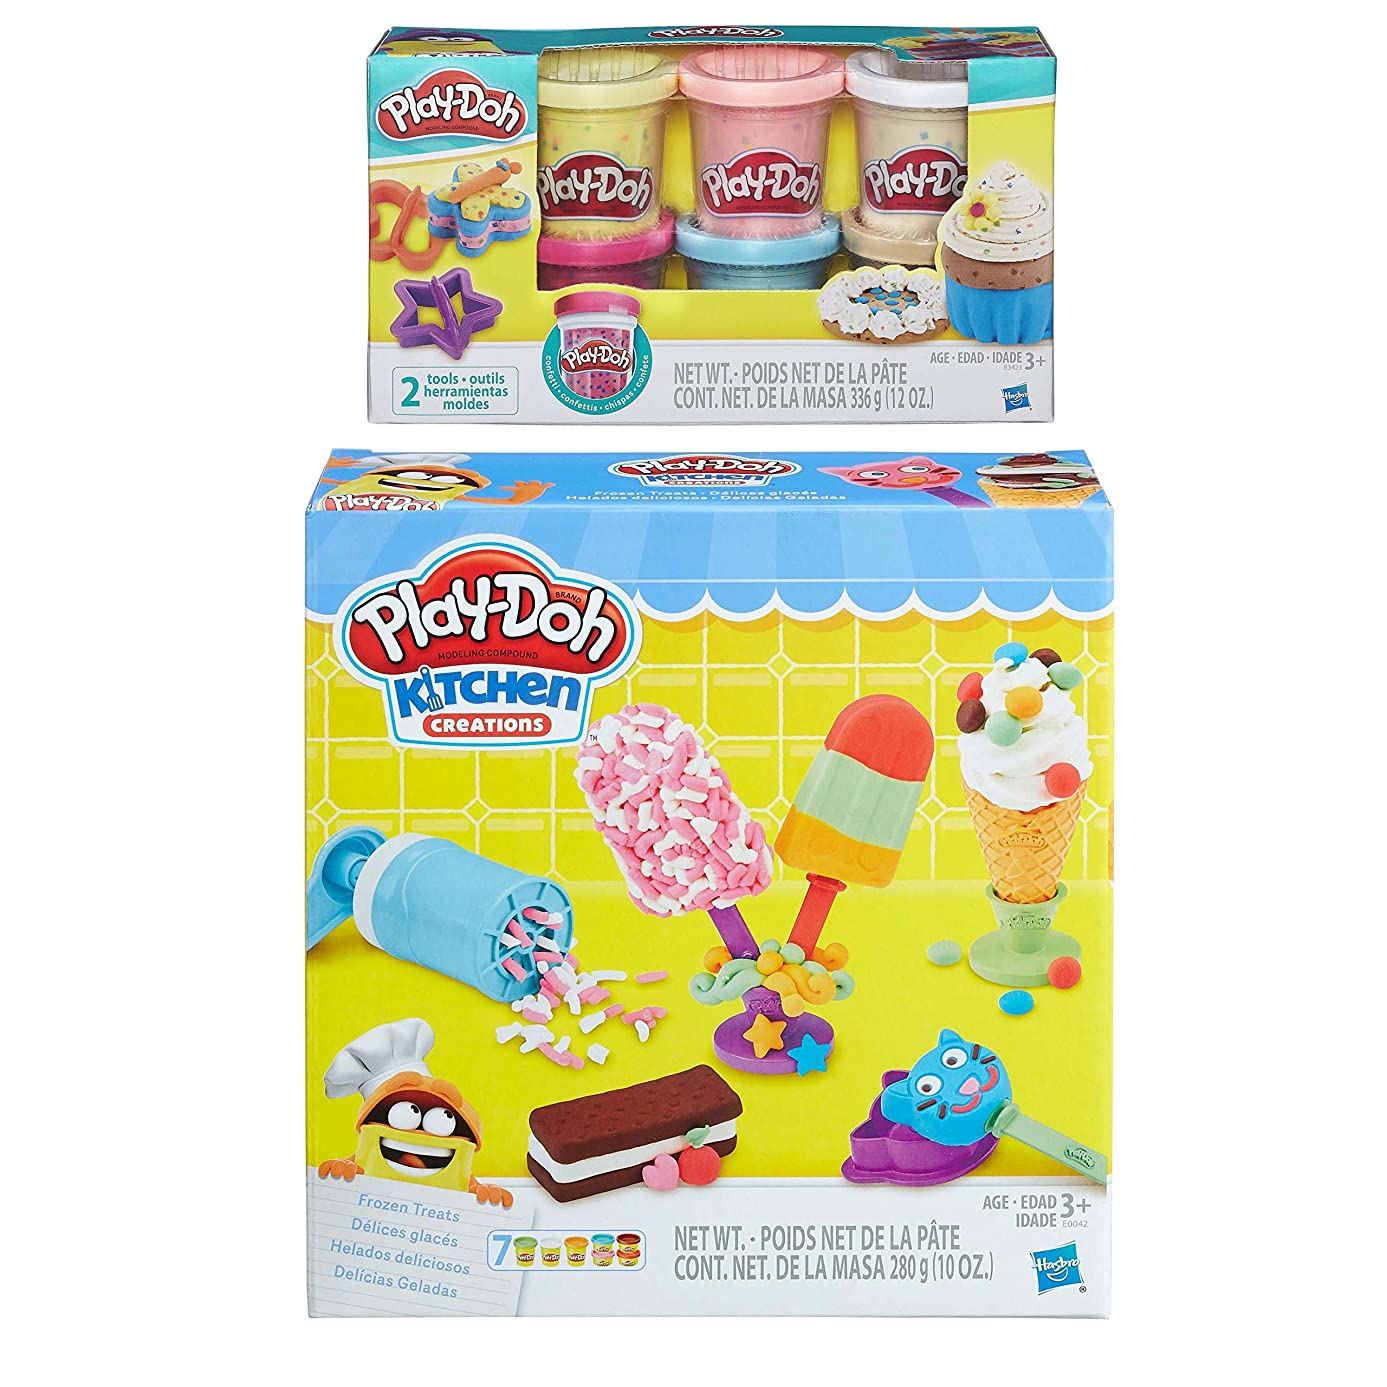 Play-Doh Kitchen Creations Frozen Treats Play Set + Play-Doh Confetti Compound Bundle